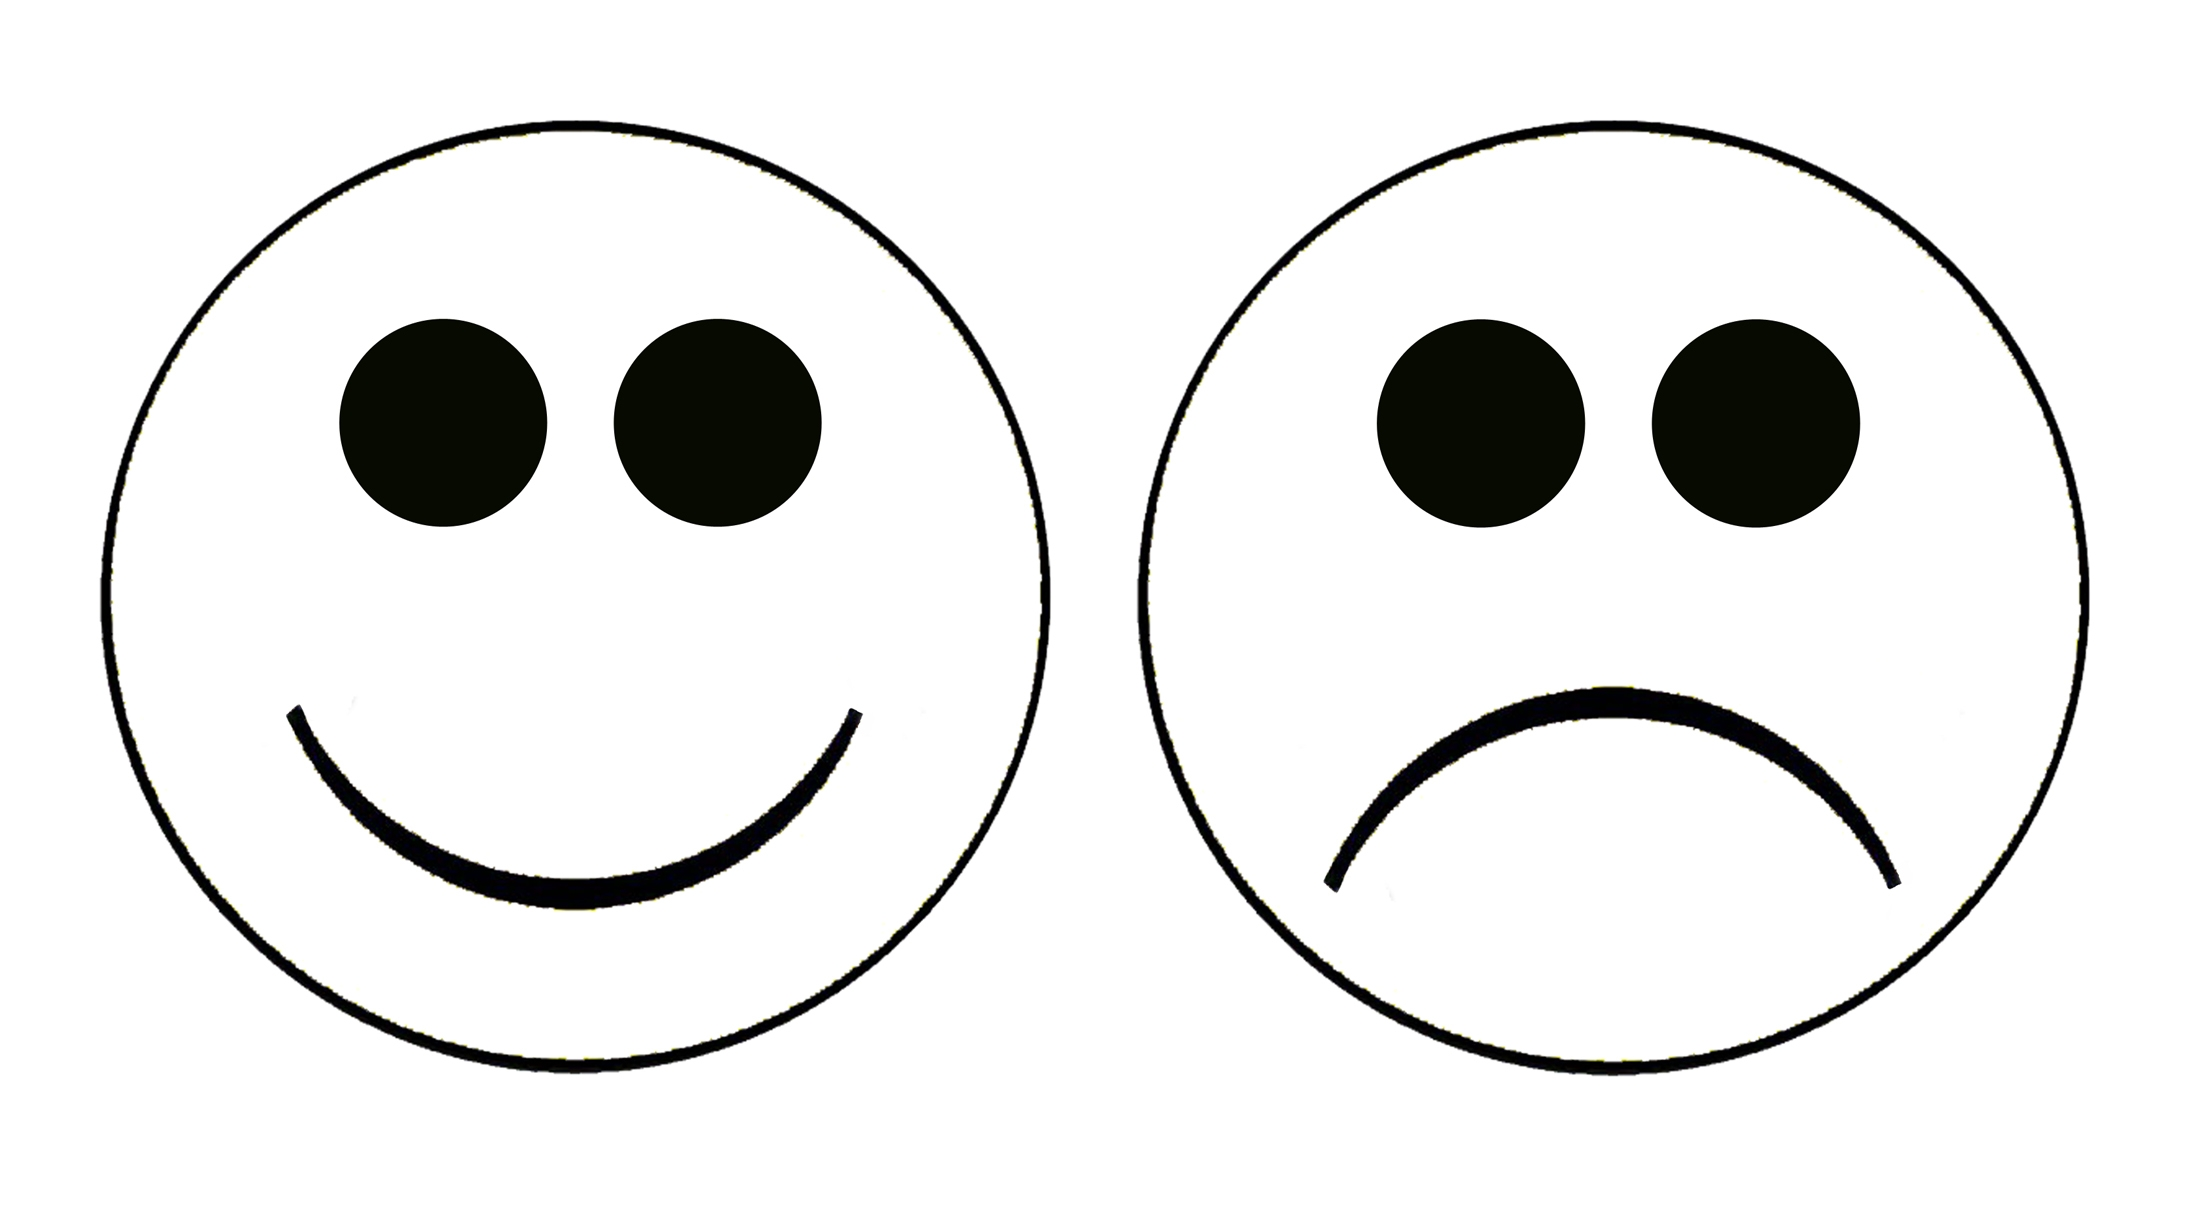 Smiley face sad face clipart-Smiley face sad face clipart-11